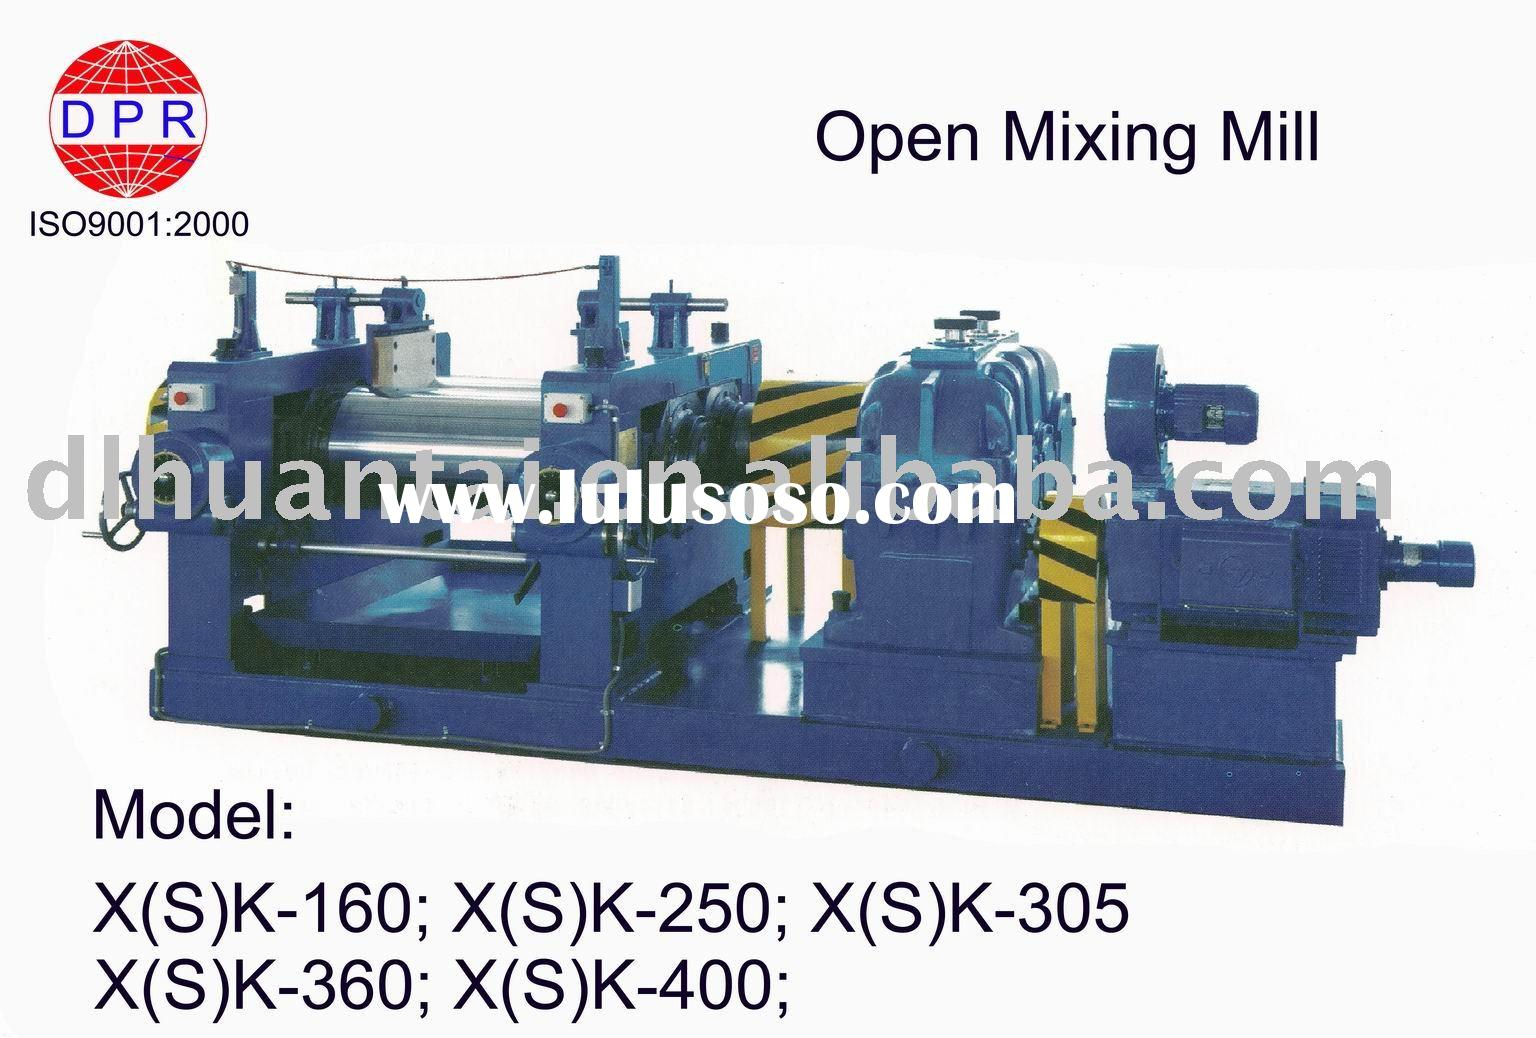 open mixing mill ( ISO 9001:2000) for rubber & plastic industry